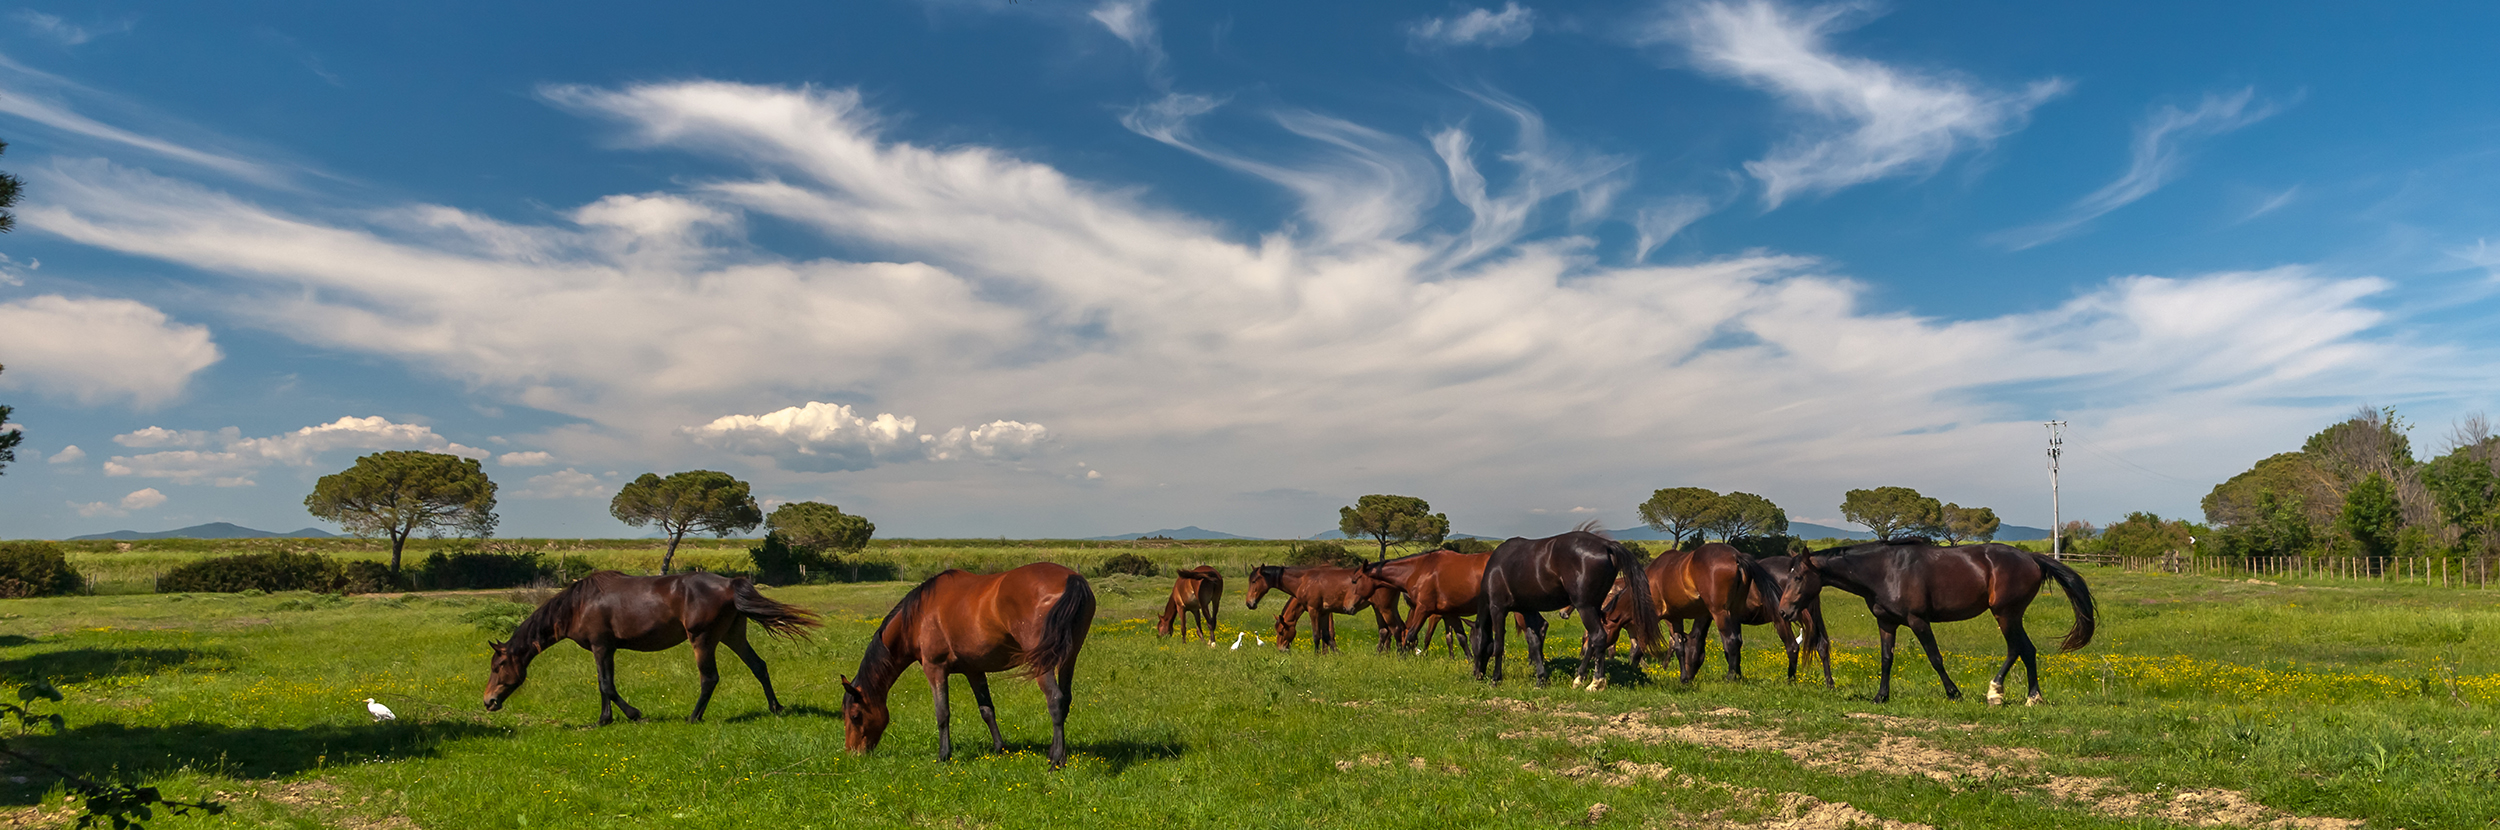 A panorama of a dozen brown horses grazing in a field